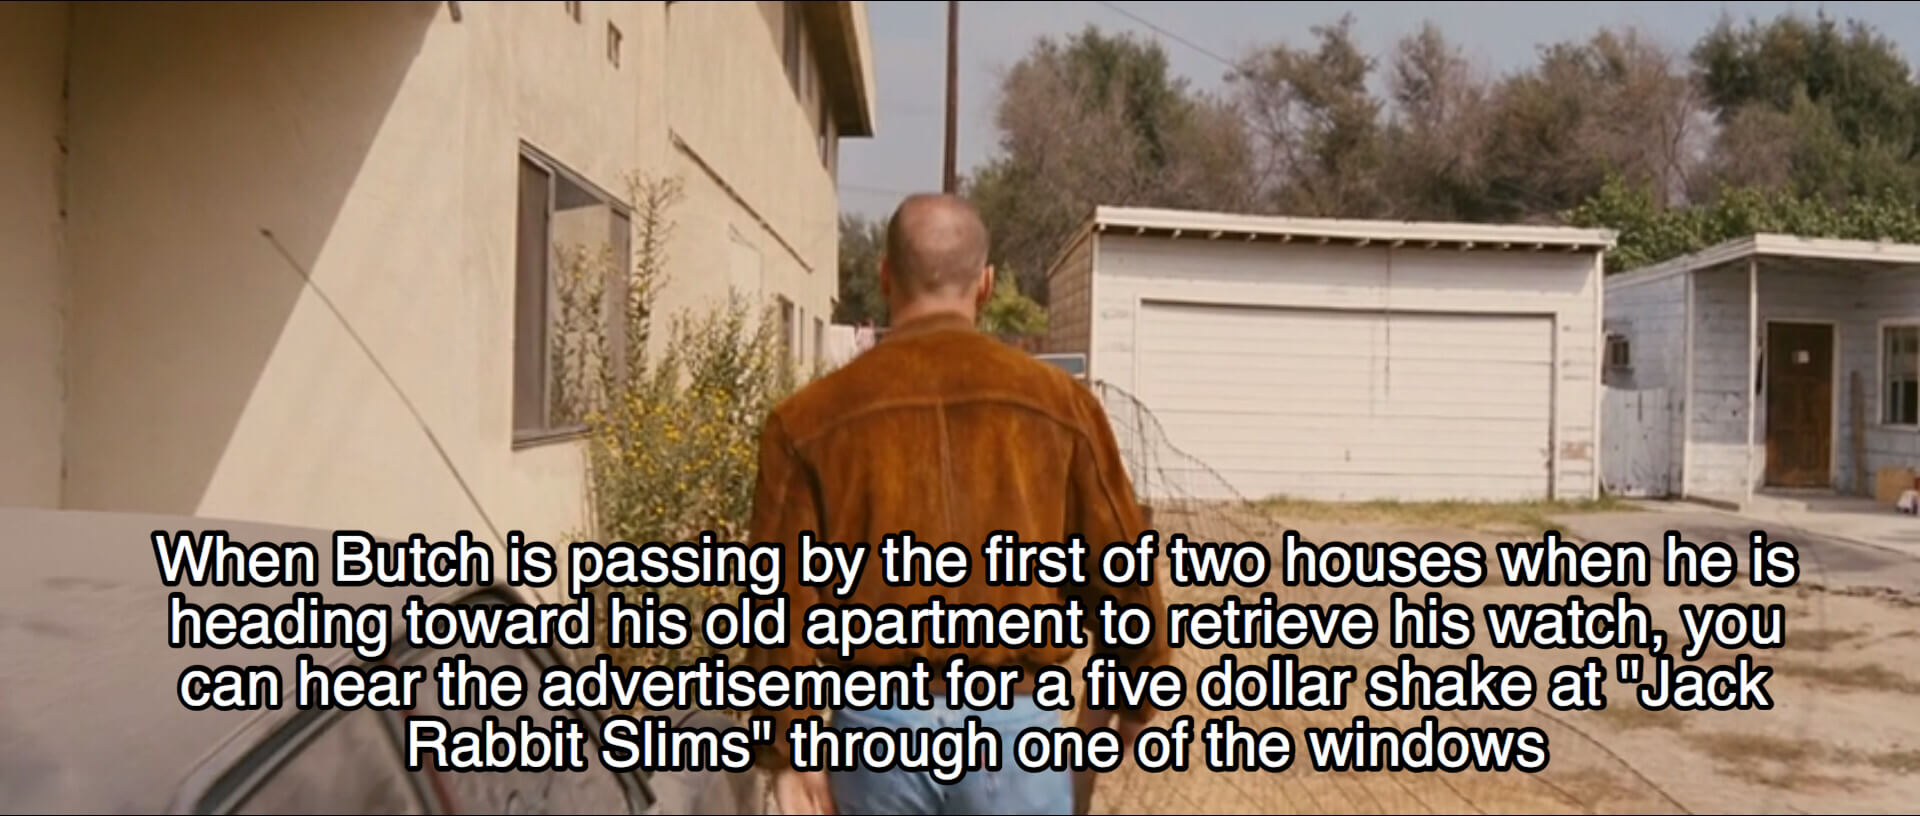 pulp fiction facts 20 (1)